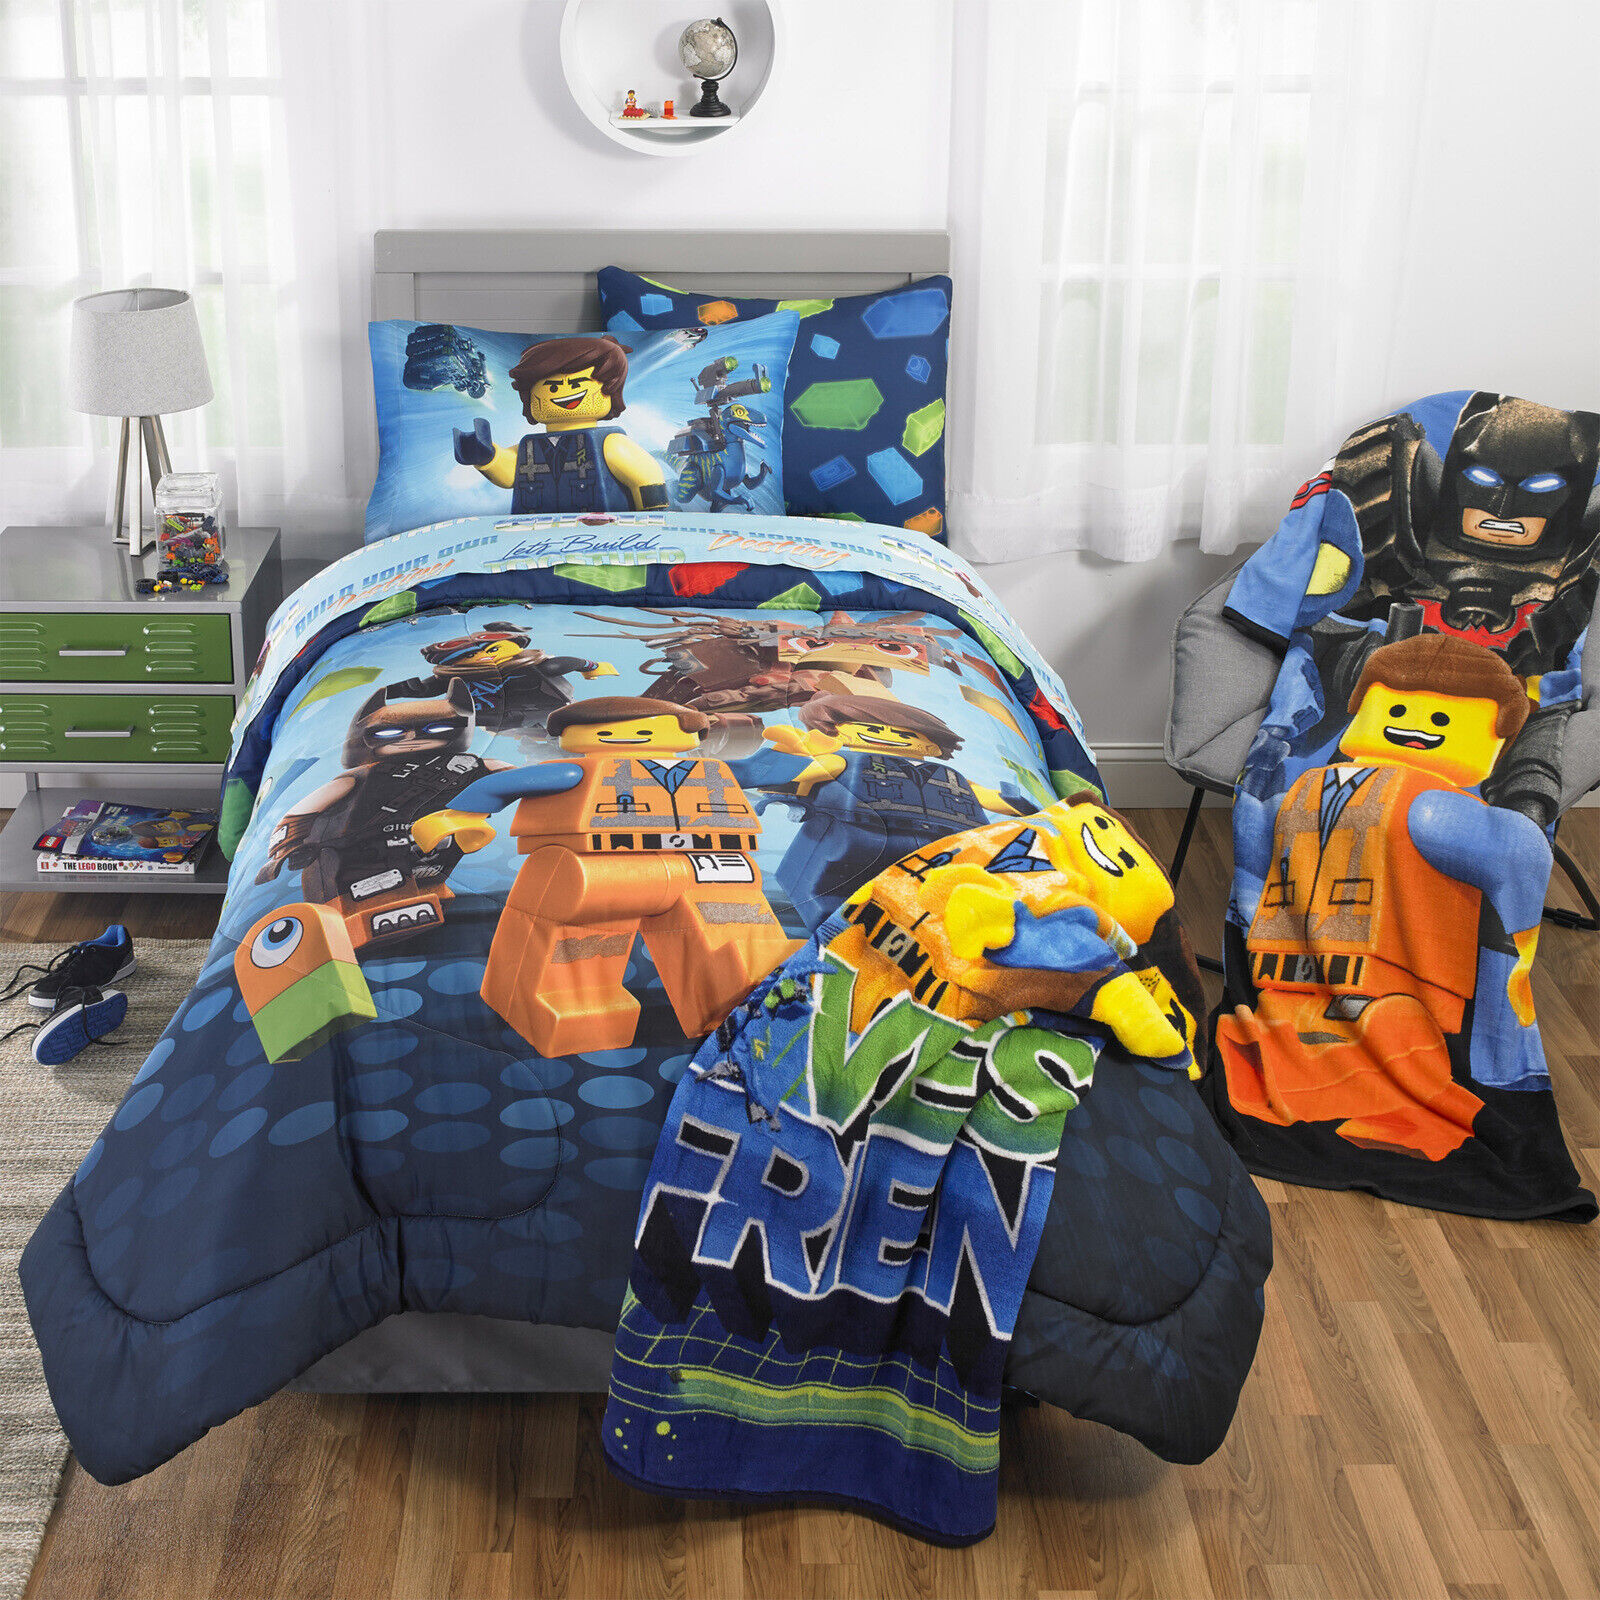 Lego Movie 2 Build Together Comforter Set with Sham Kids Bedding Twin Full Size